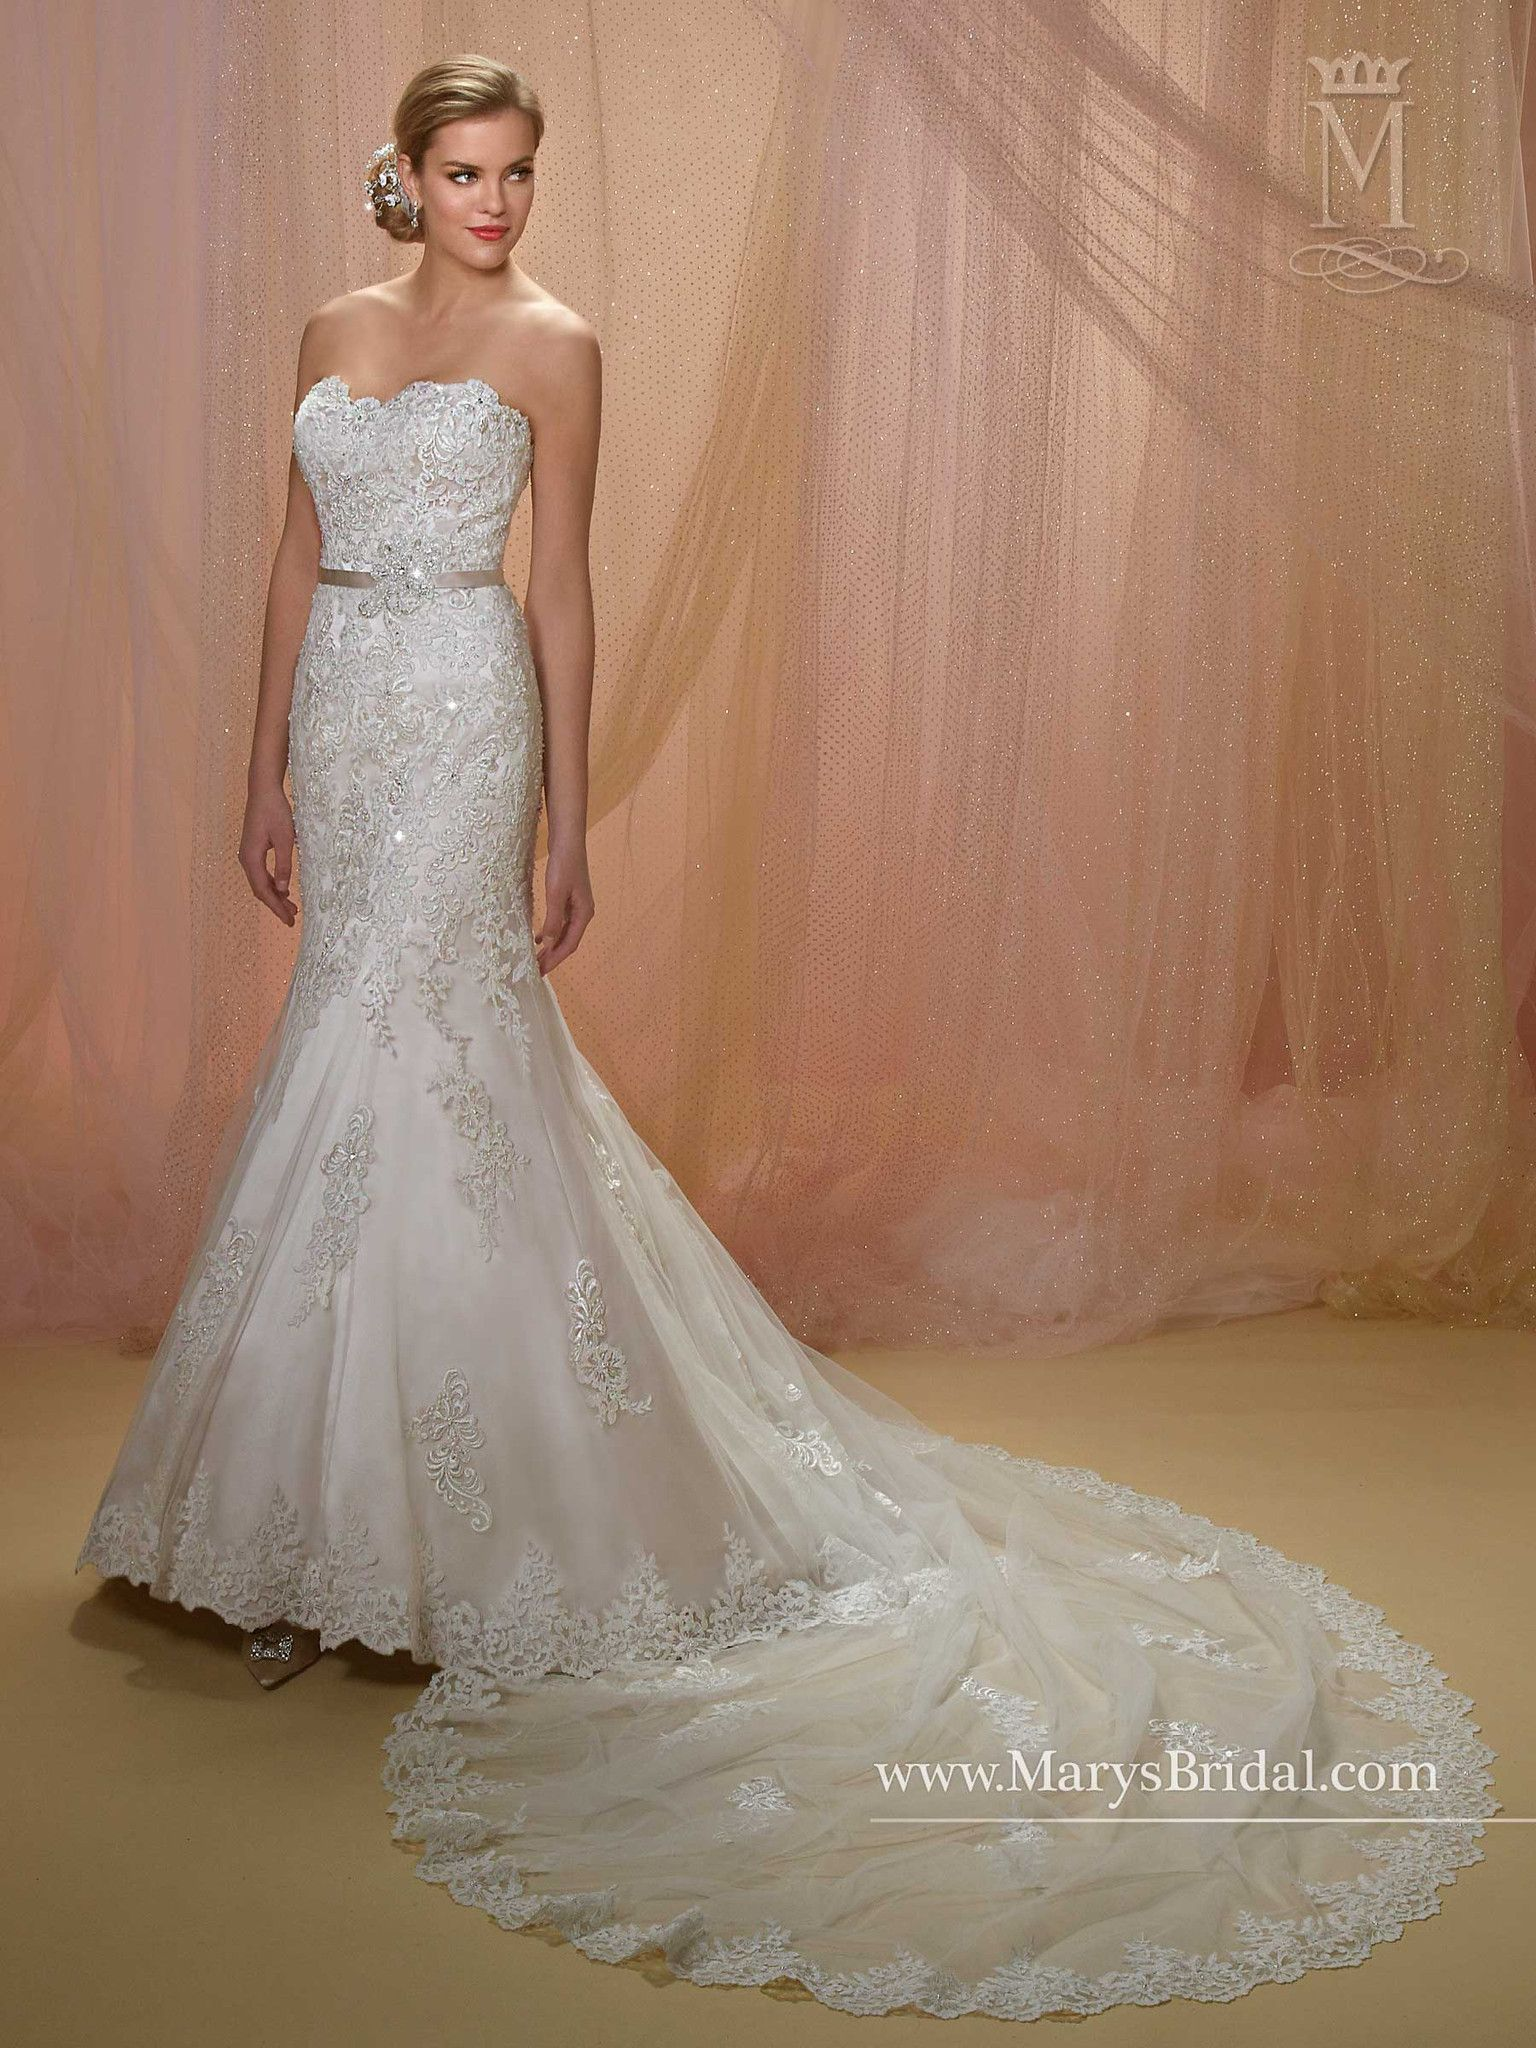 Mermaid Tulle Gown | Products | Pinterest | Tulle gown and Products